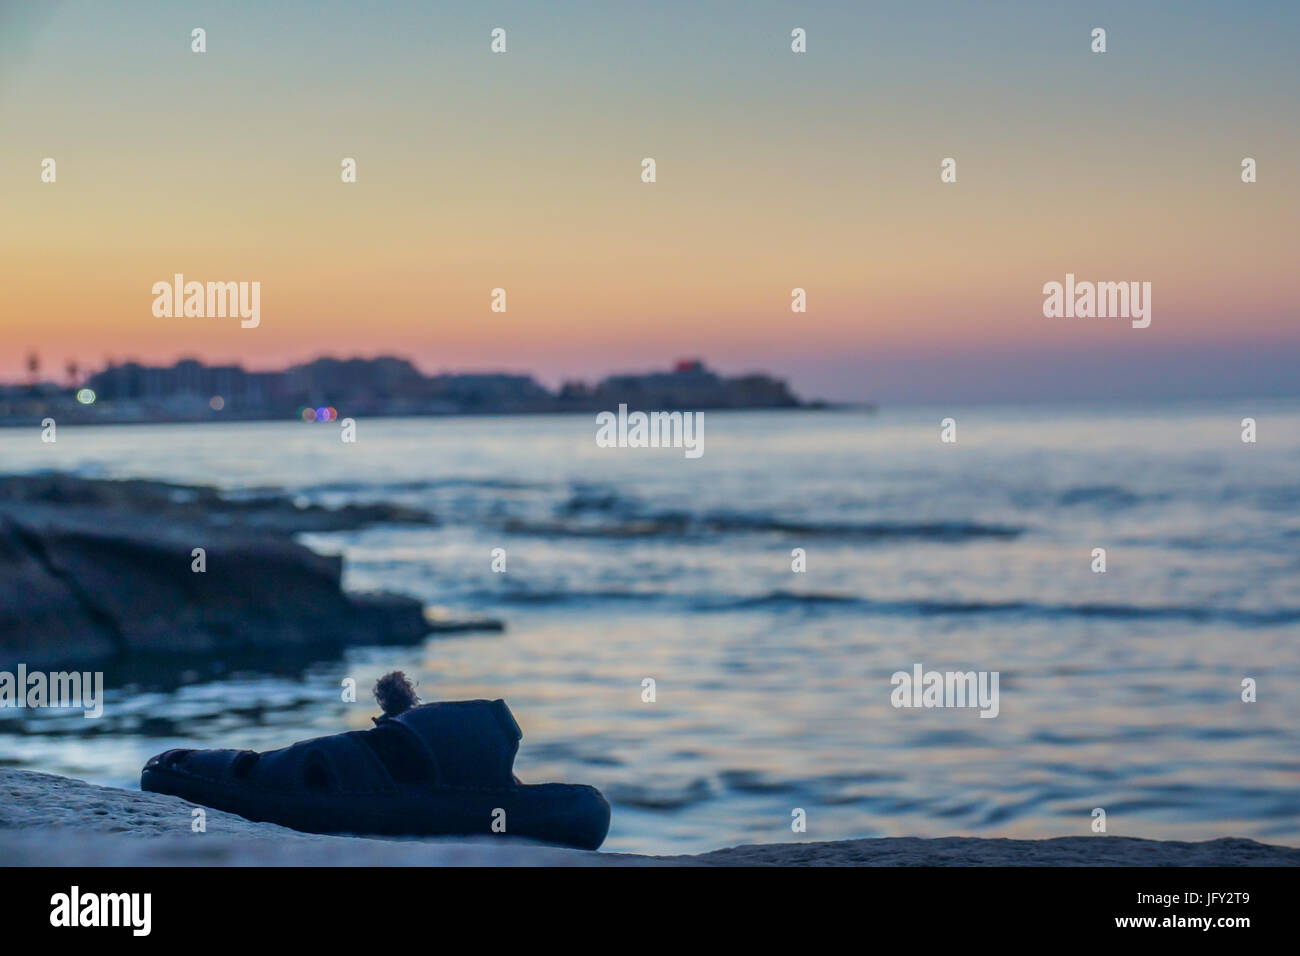 An image of a single flip flop left on the waters edge in Silema, Malta. The sunset creates an amazing backdrop, - Stock Image